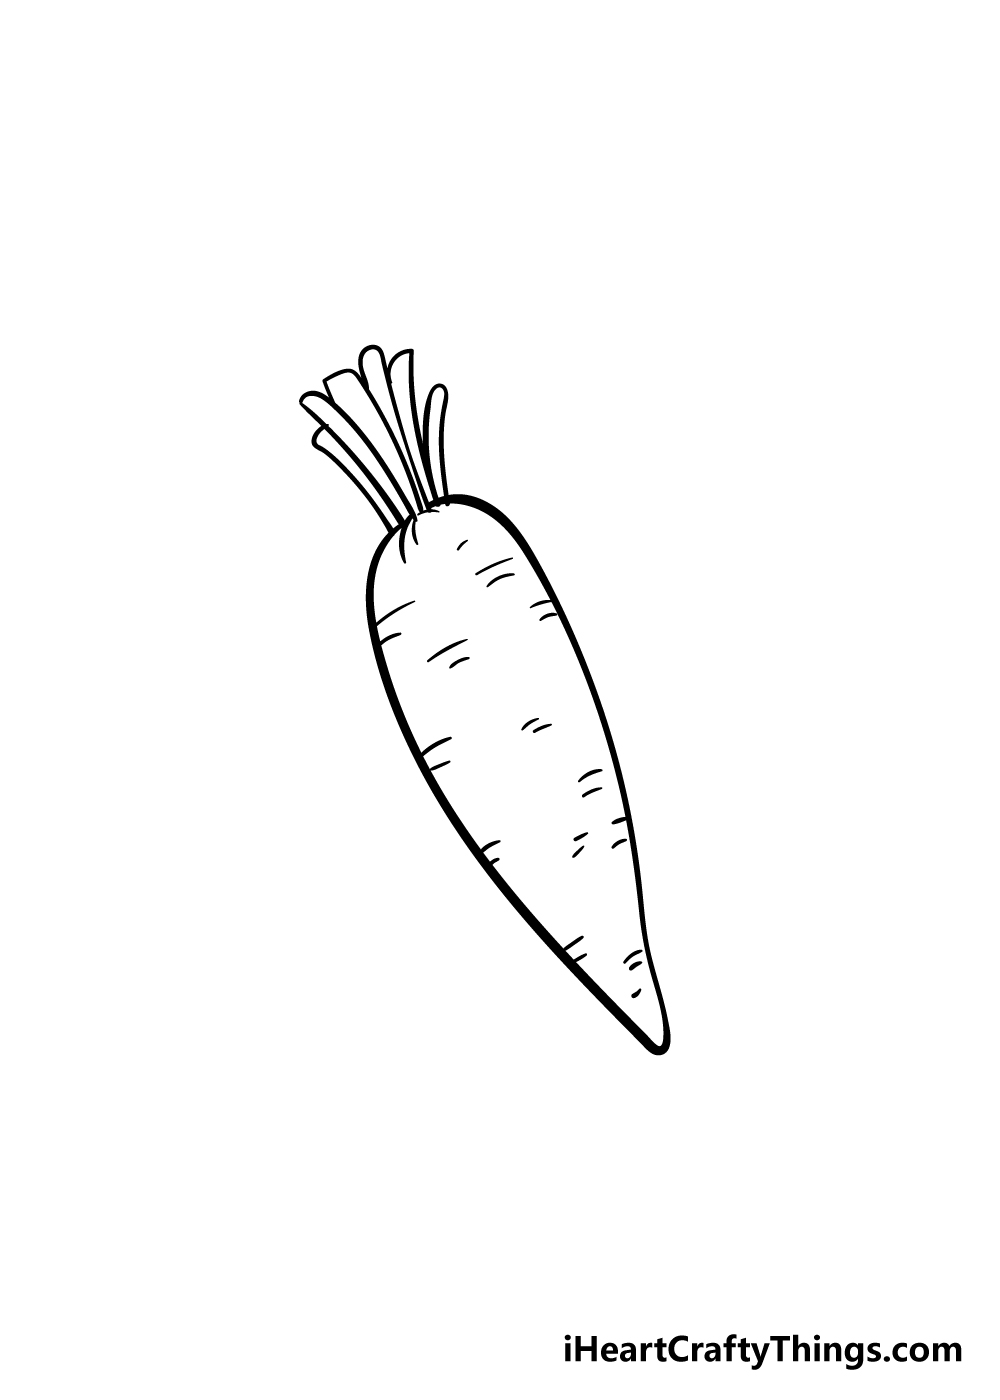 carrot drawing step 6